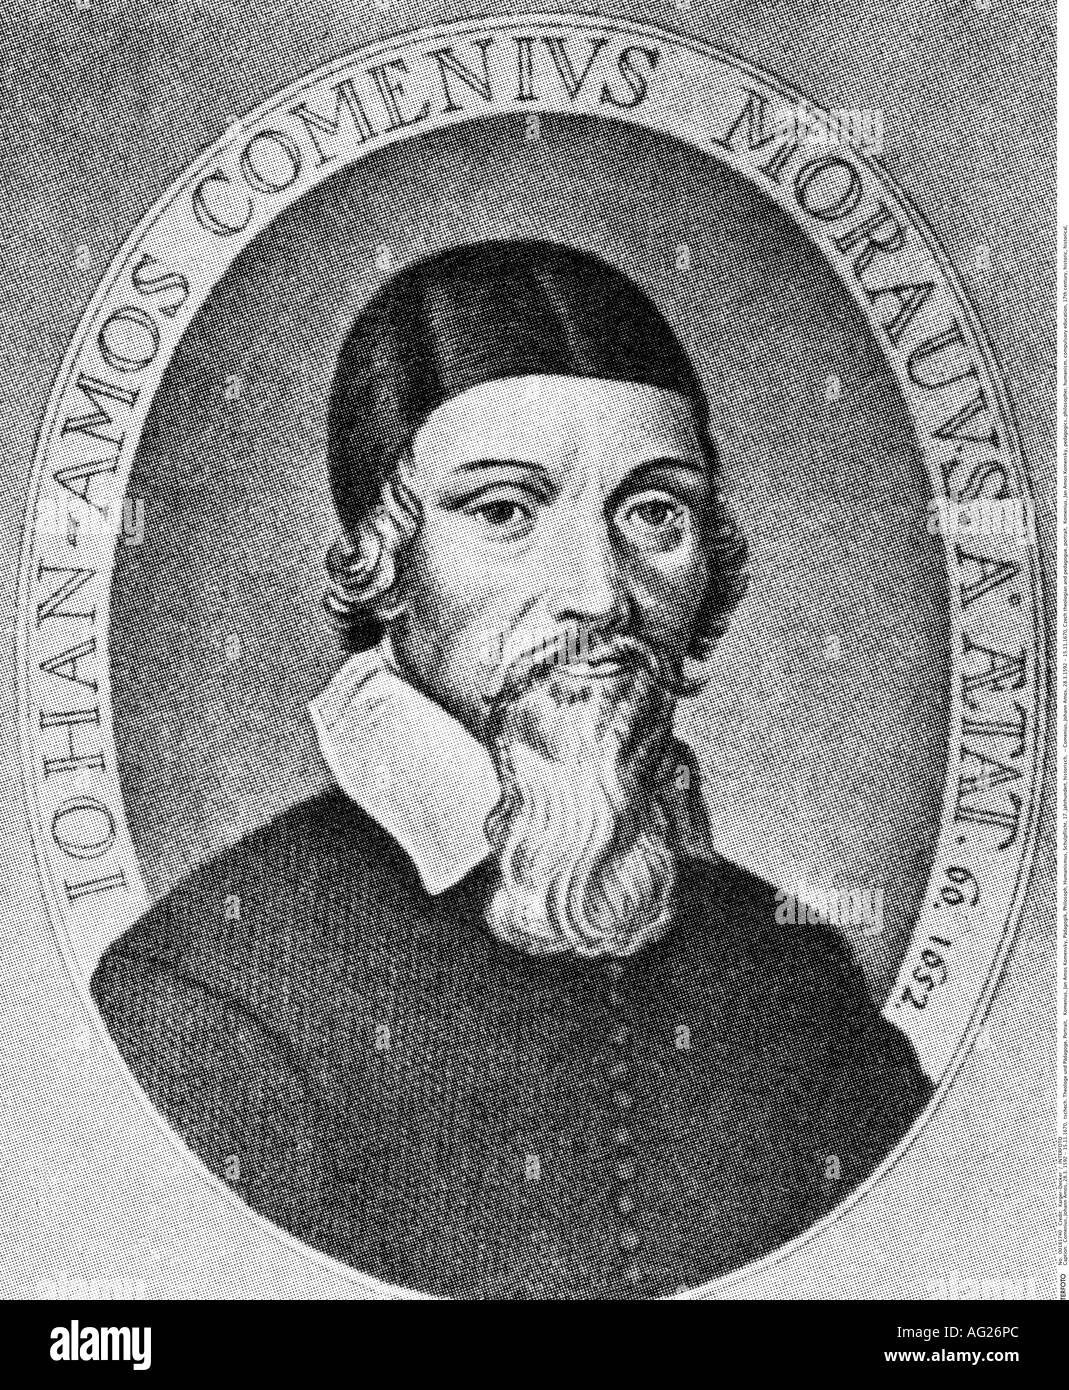 johann amos comenius philosophy